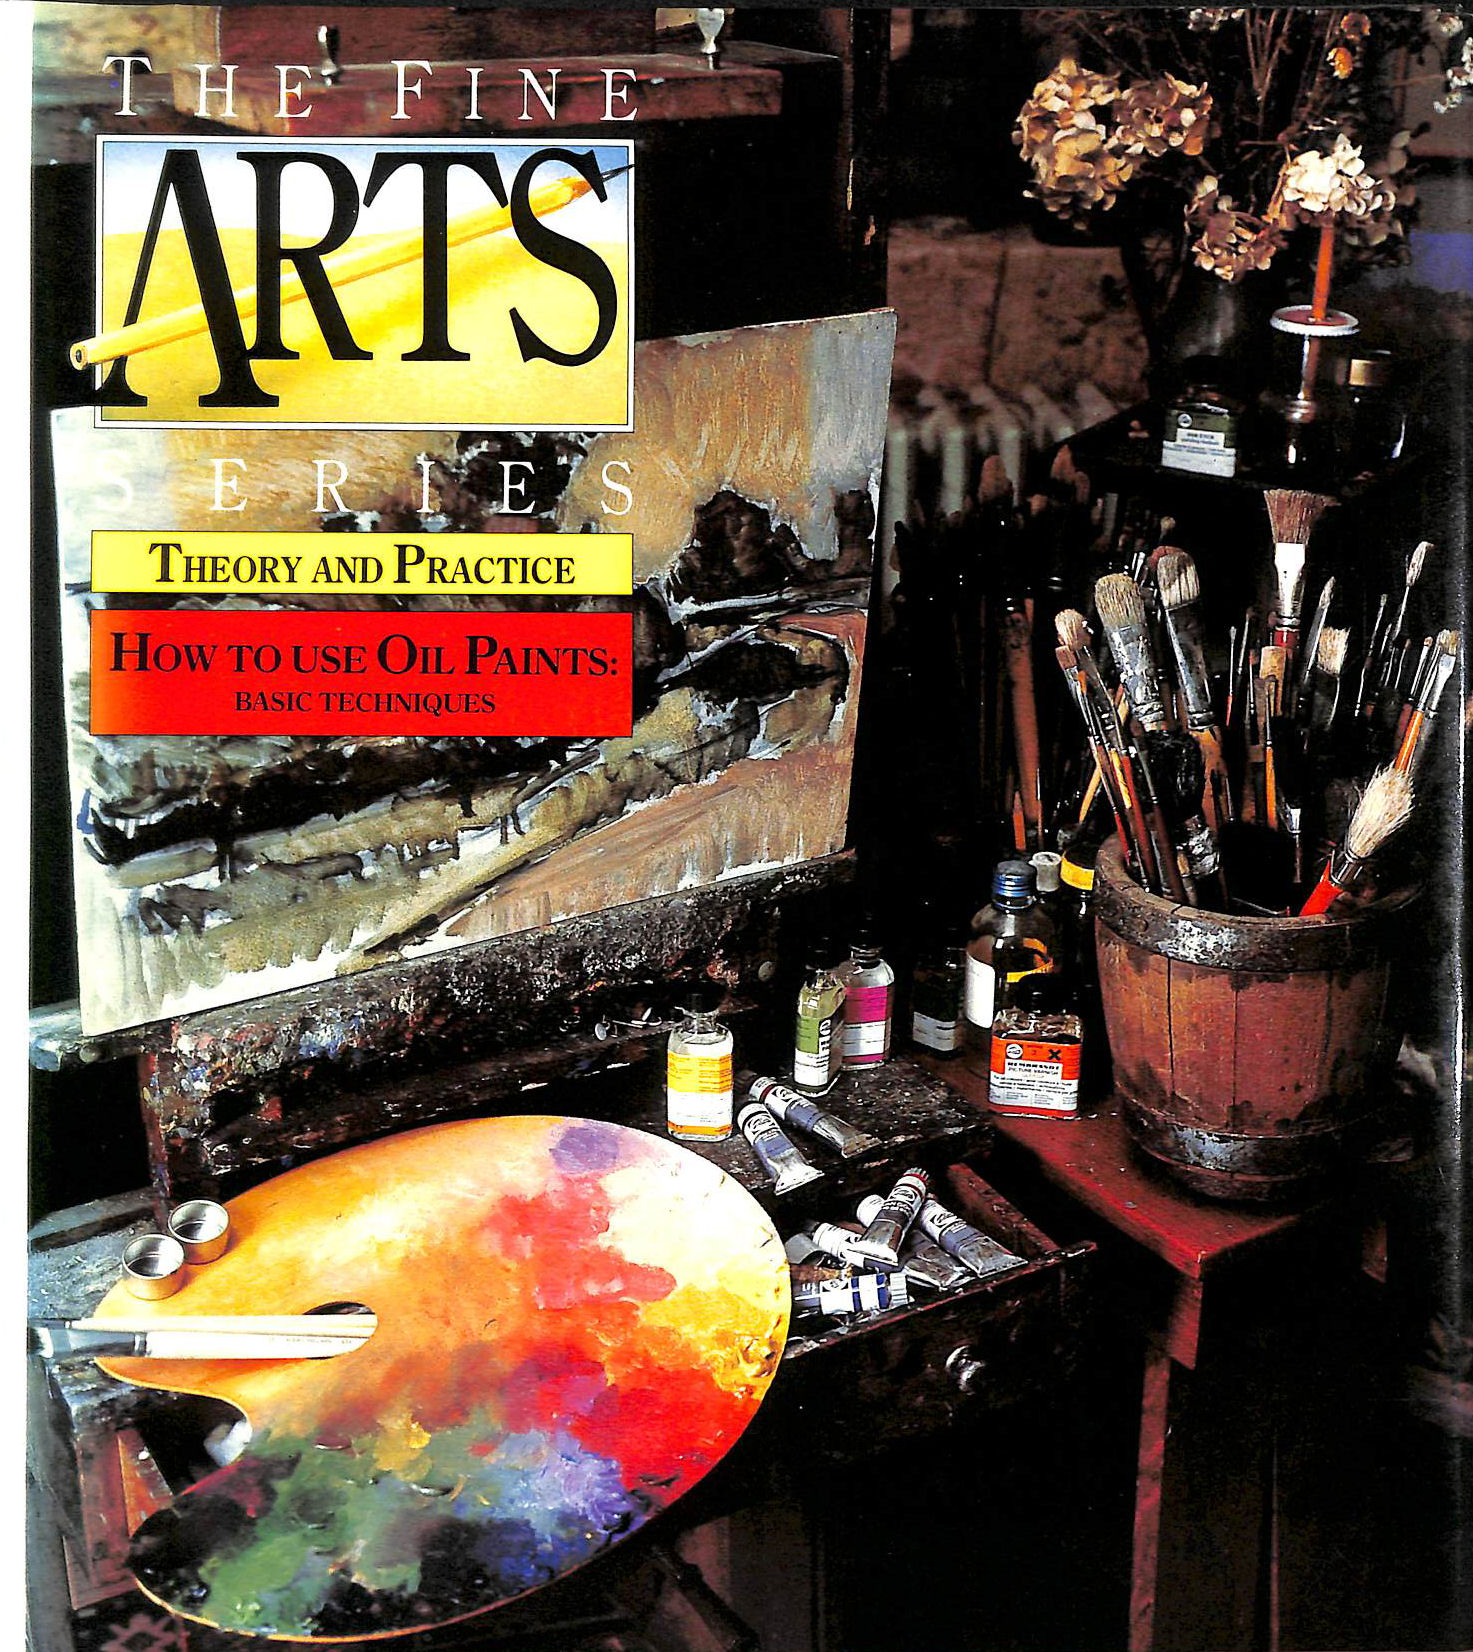 Image for Oil Painting: Basic Techniques (The fine arts series)